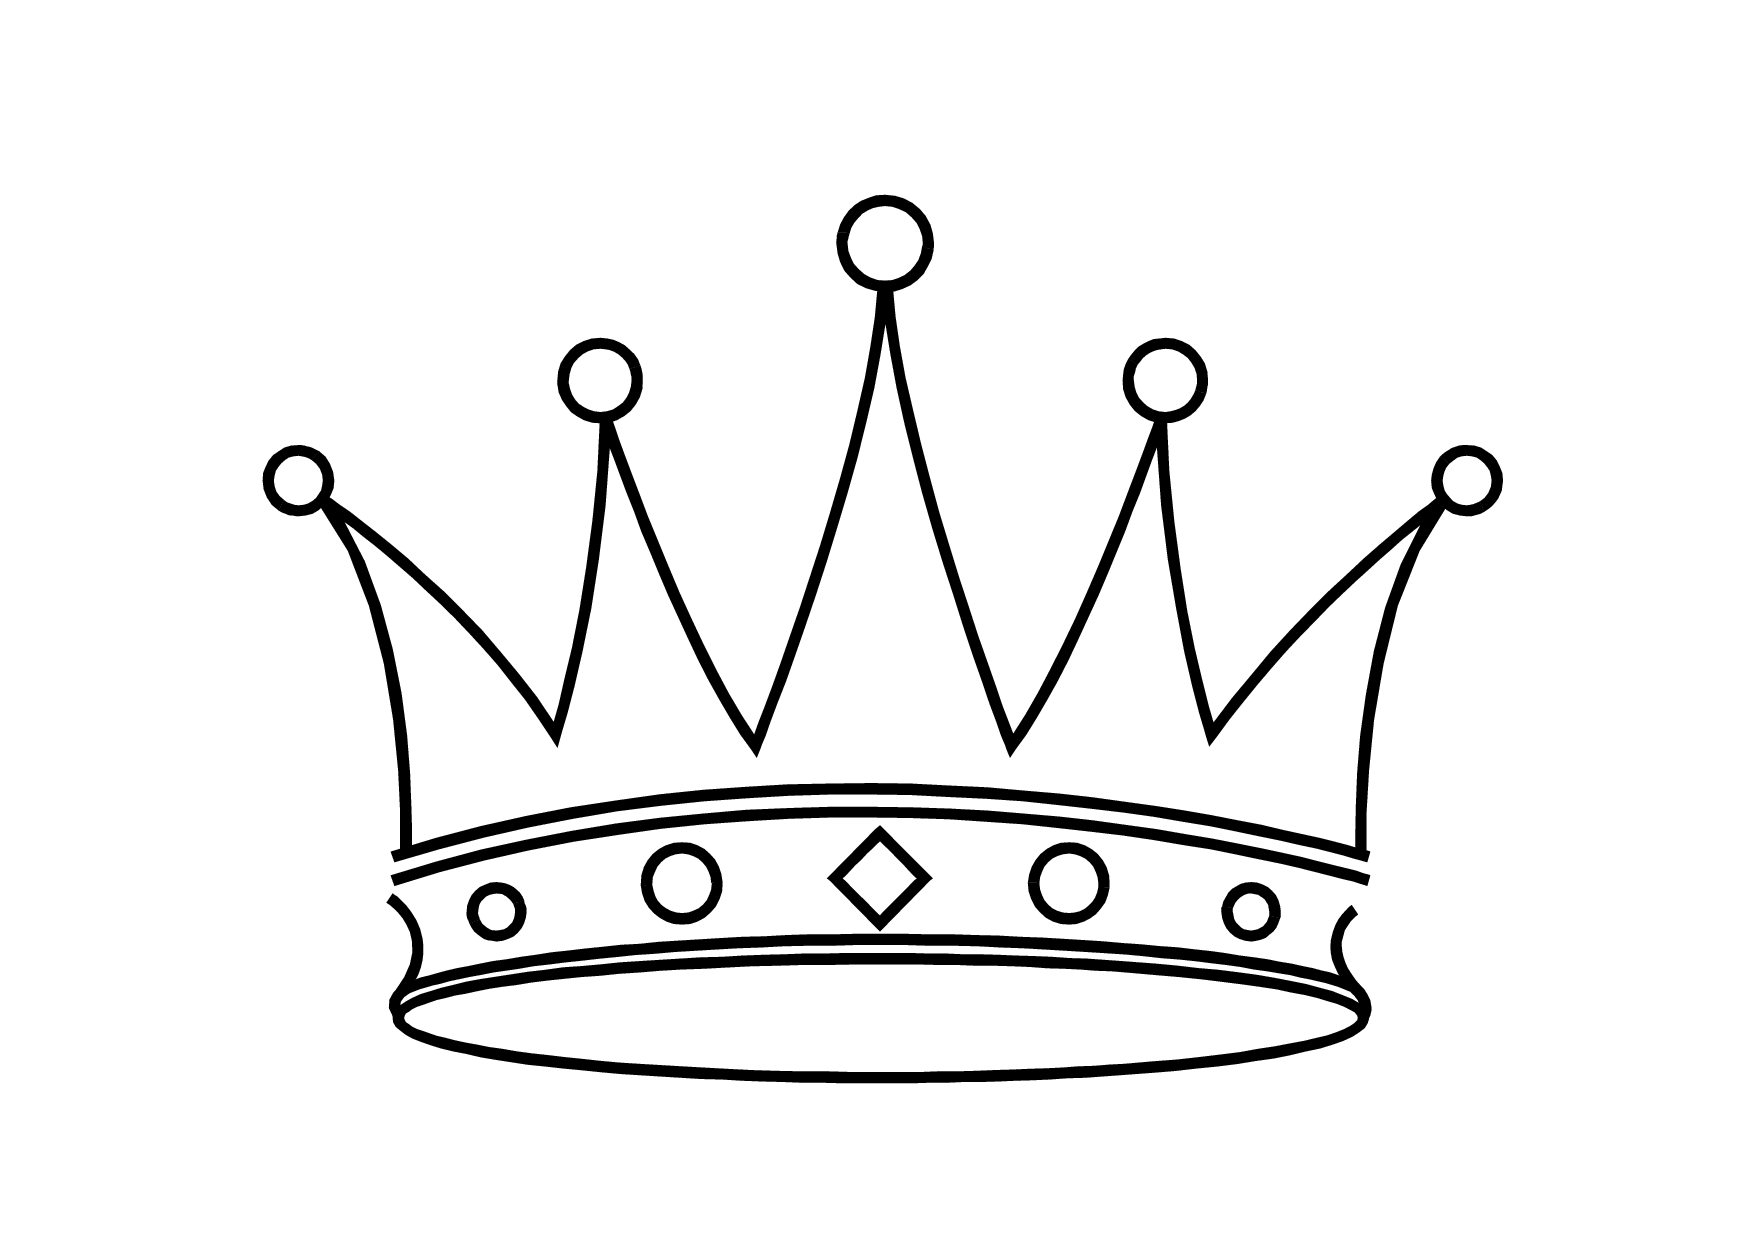 Free Crown Outline, Download Free Clip Art, Free Clip Art on.